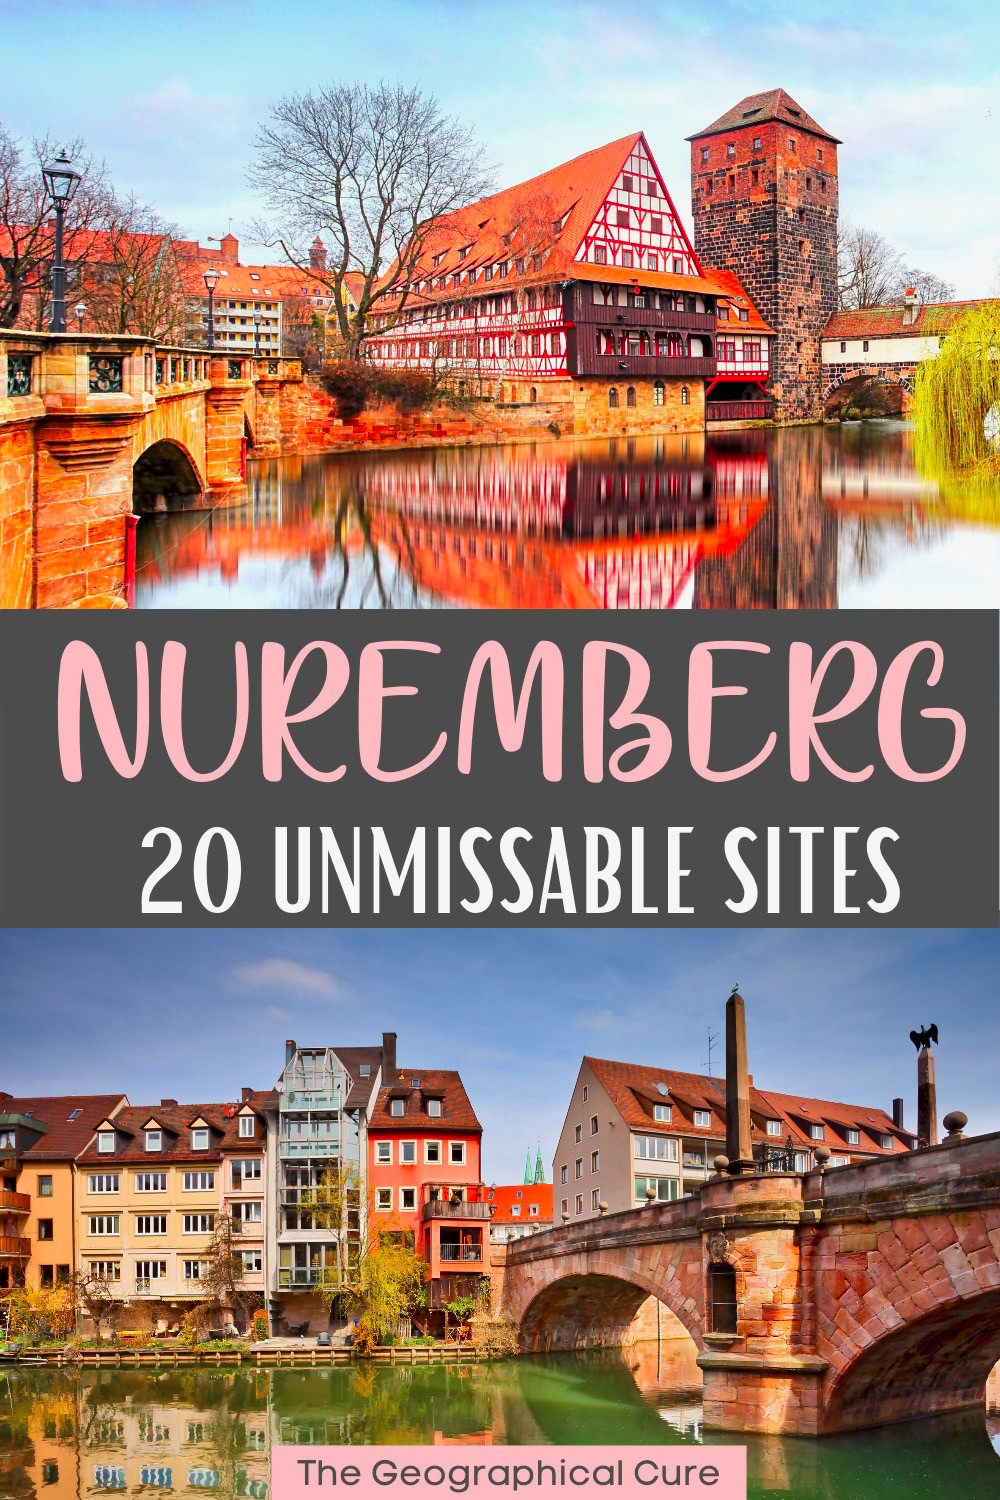 guide to the best things to do and see in Nuremberg Germany